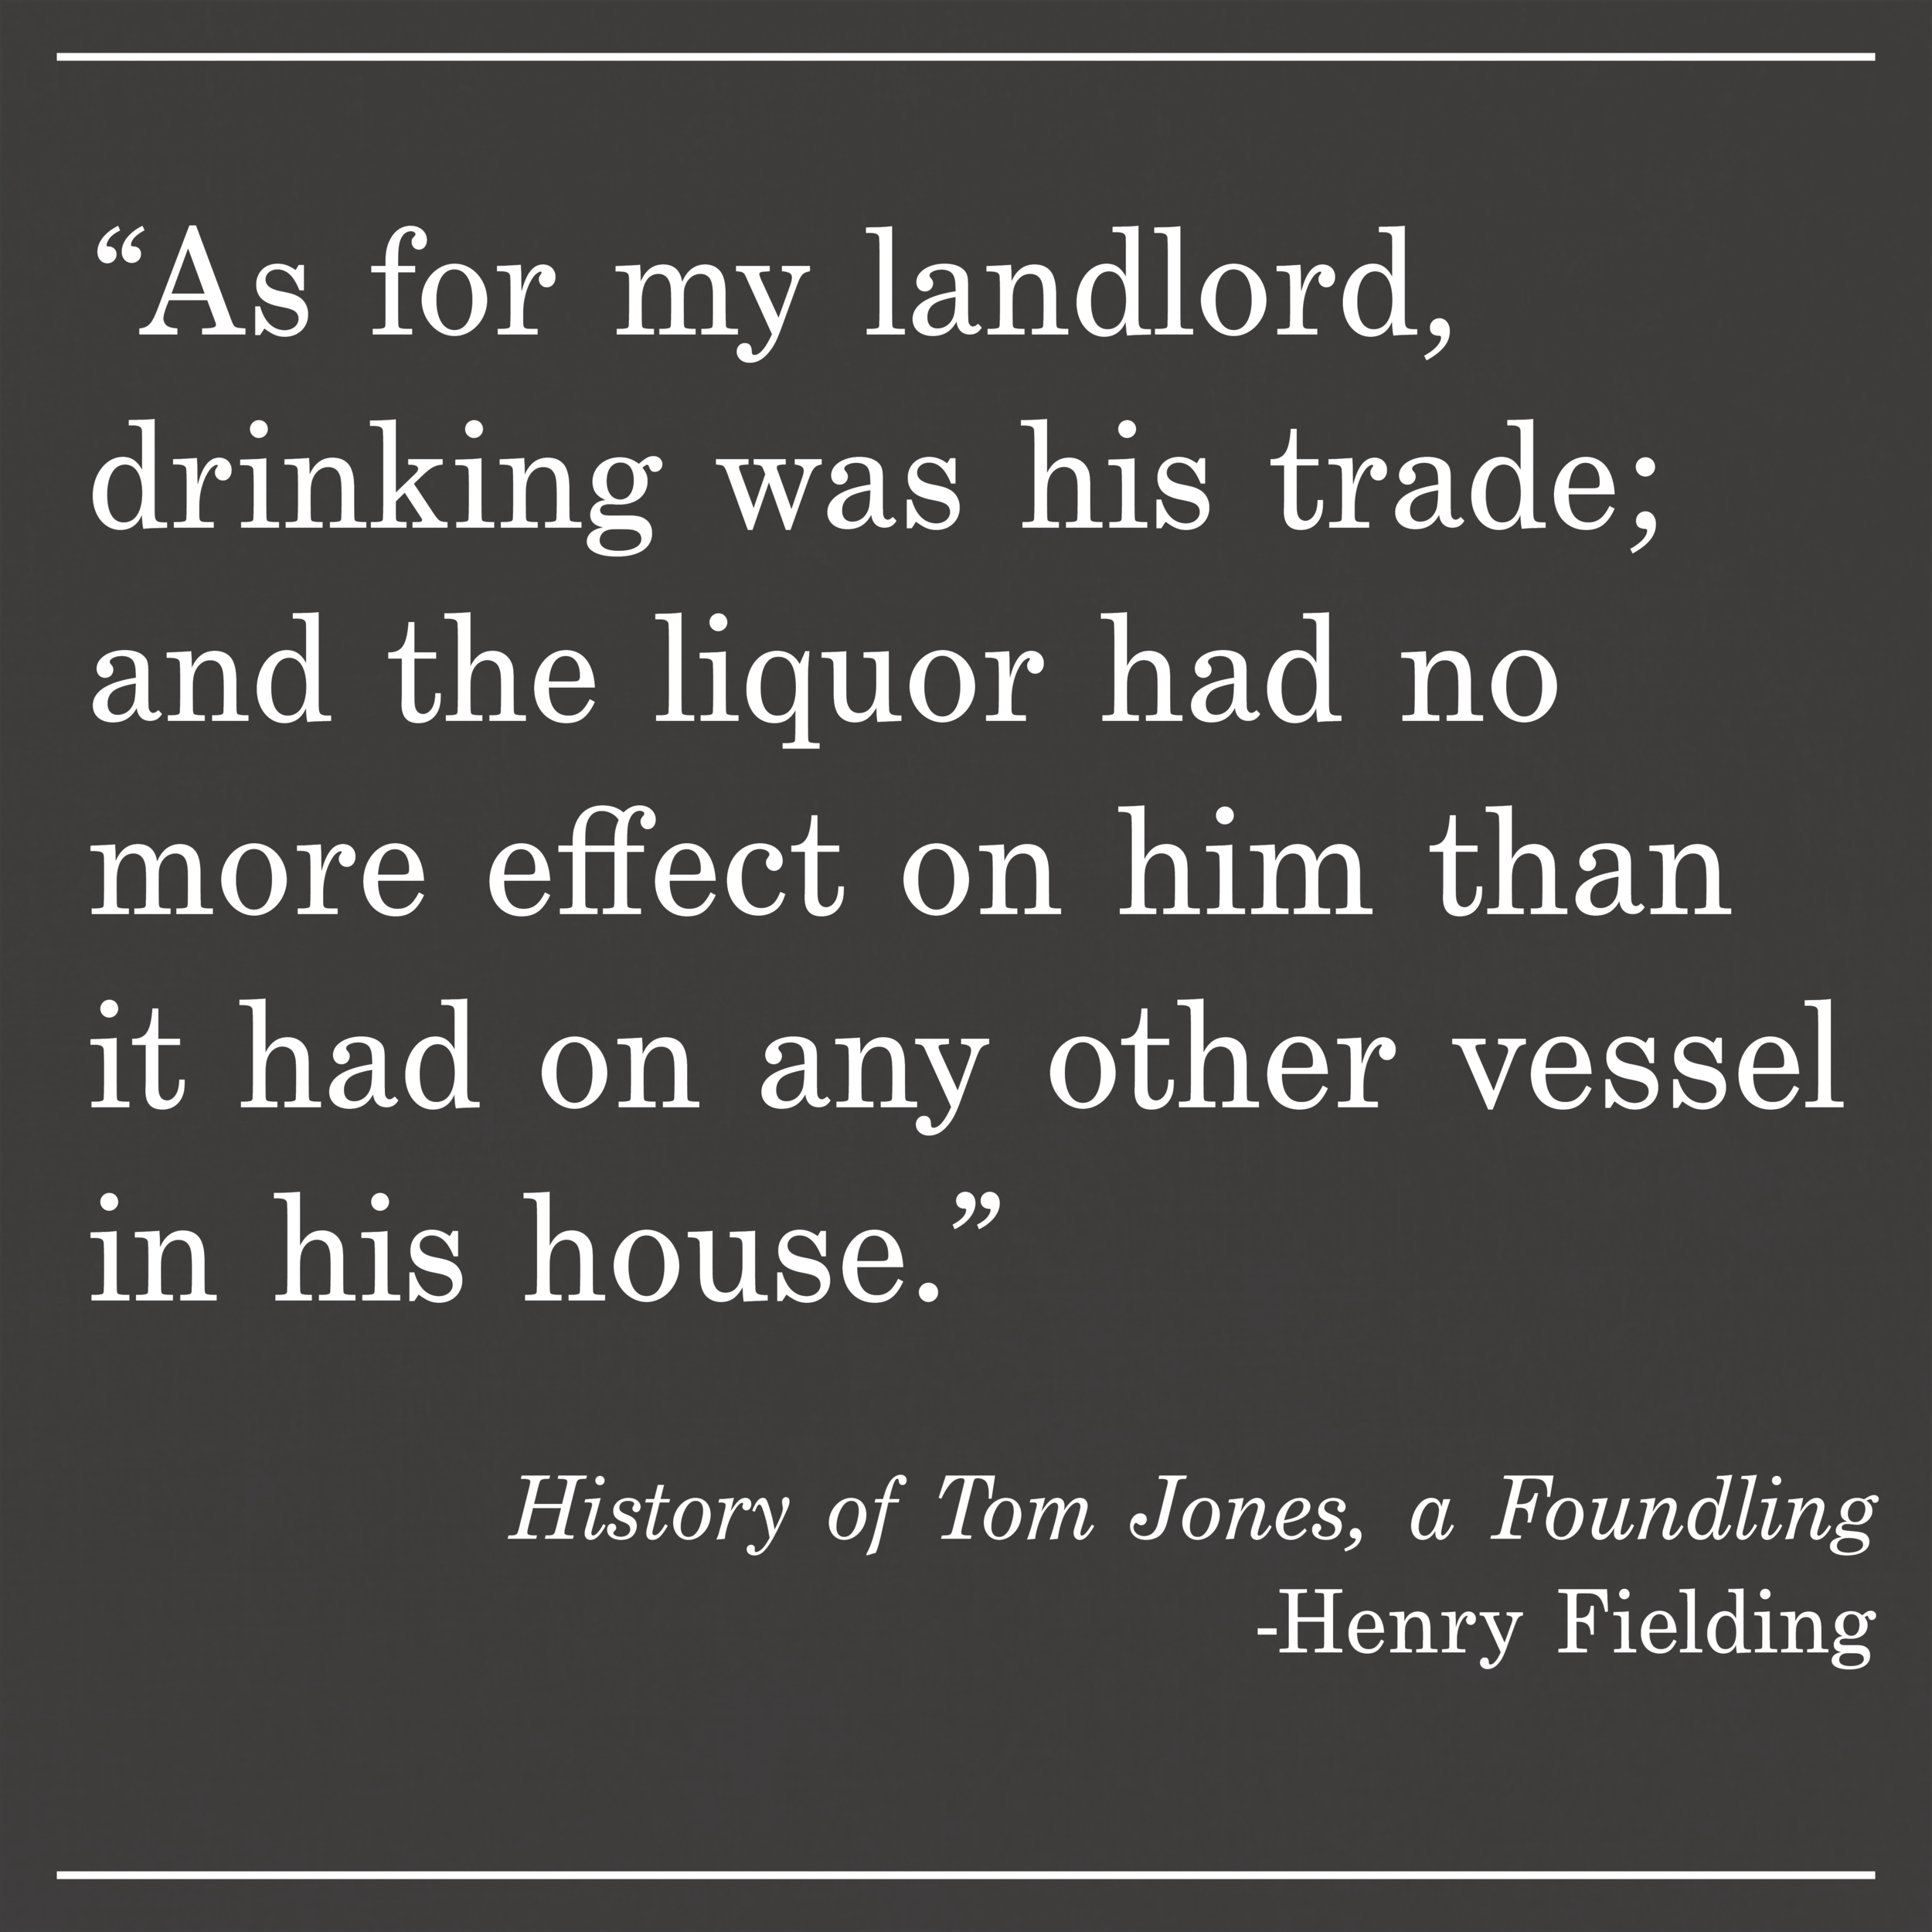 Daily Quote History of Tom Jones, a Foundling by Henry Fielding